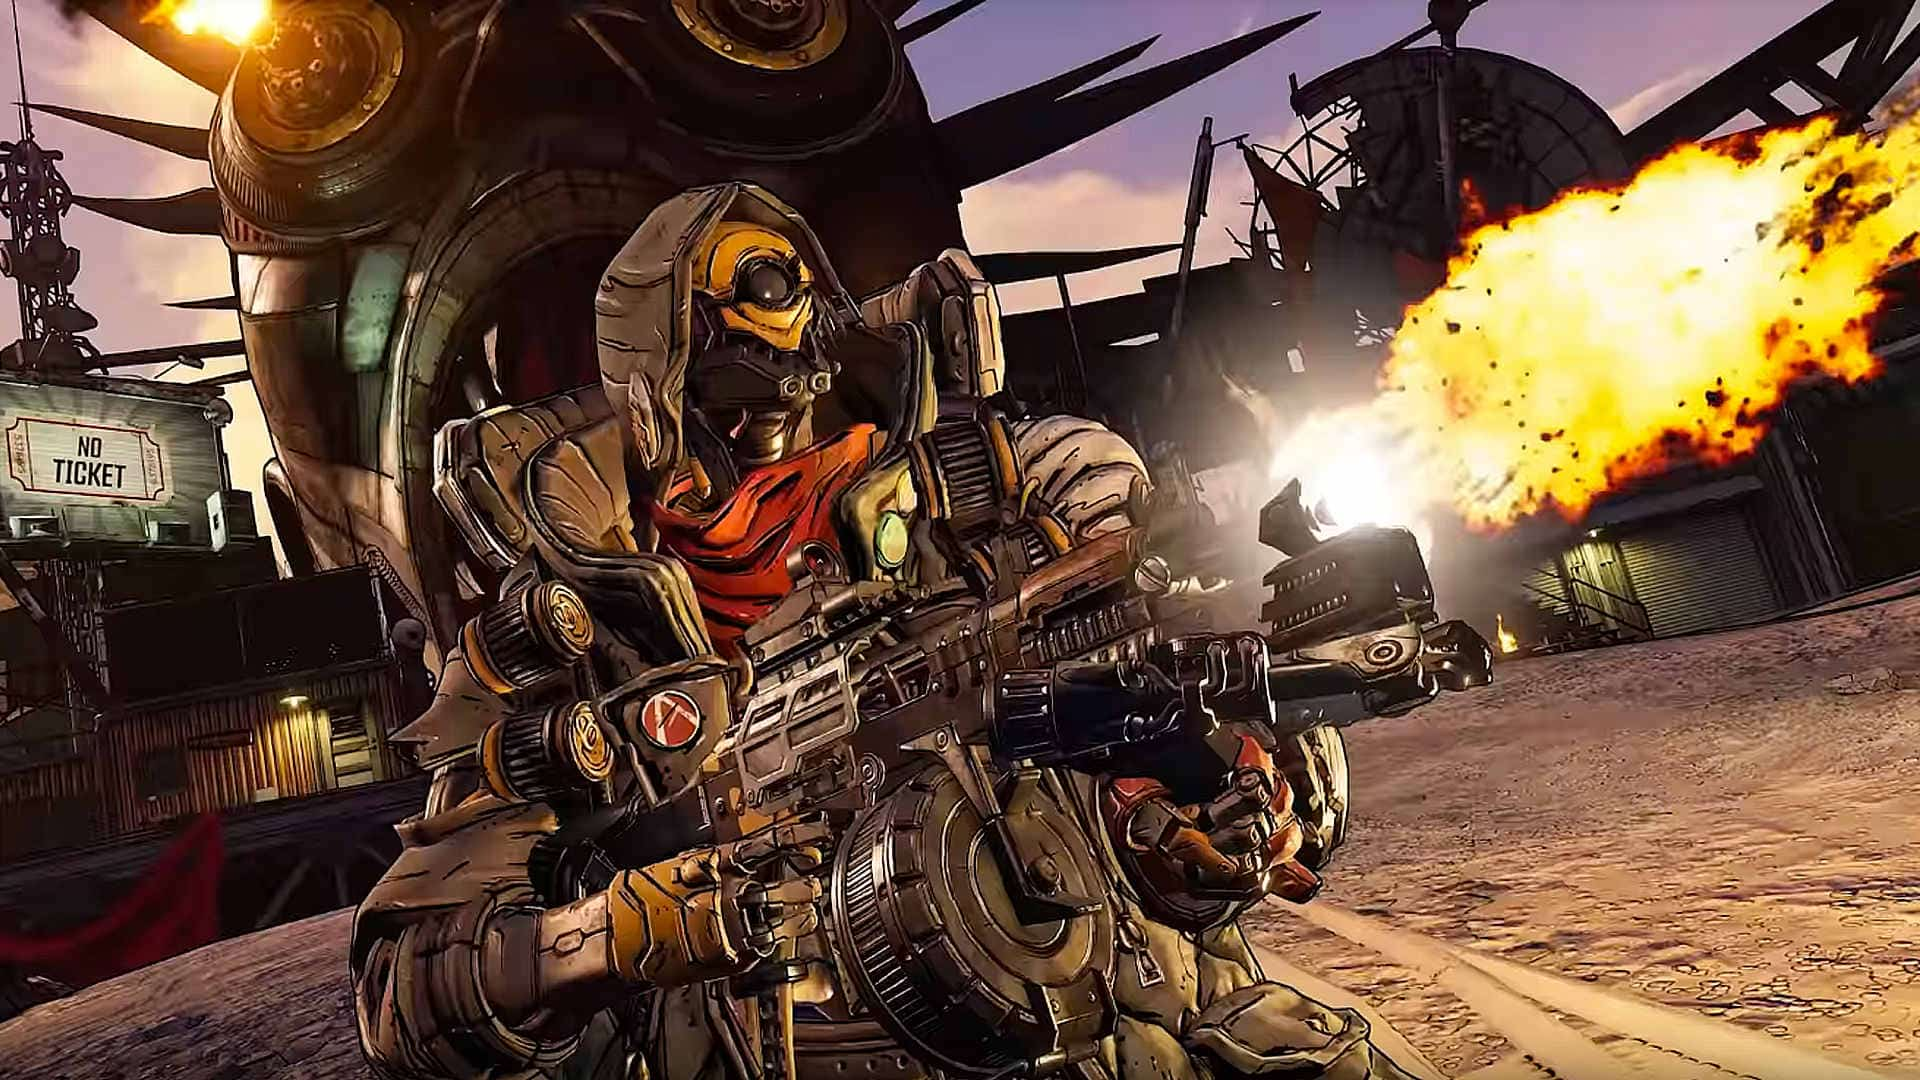 Borderlands 3's new patch takes aim at keeping things challenging for over-leveled characters screenshot